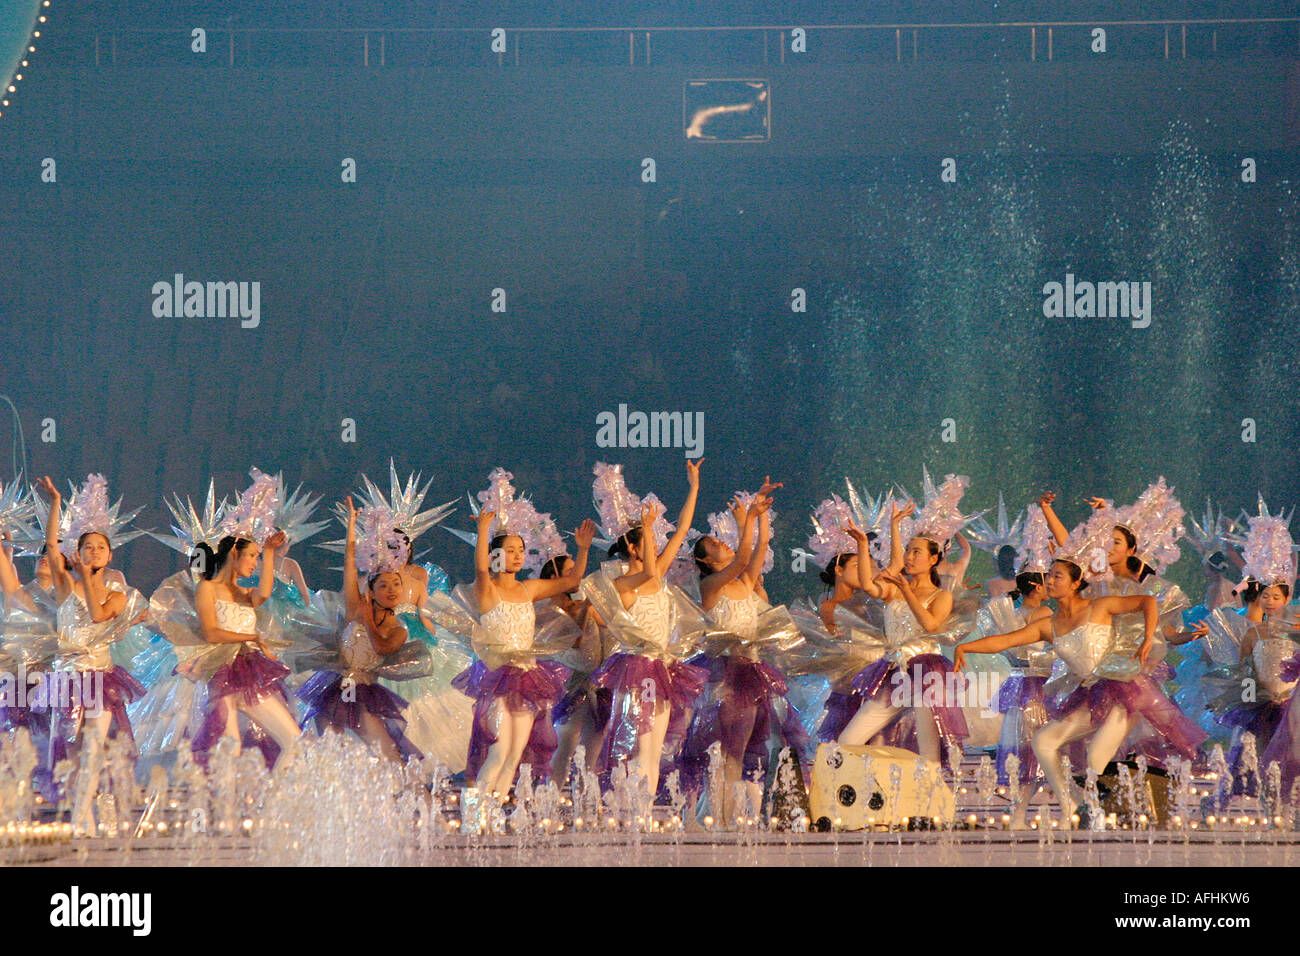 West Lake Expo, Hangzhou, China: Girl students dressed as snow flakes perform at the opening ceremony. - Stock Image